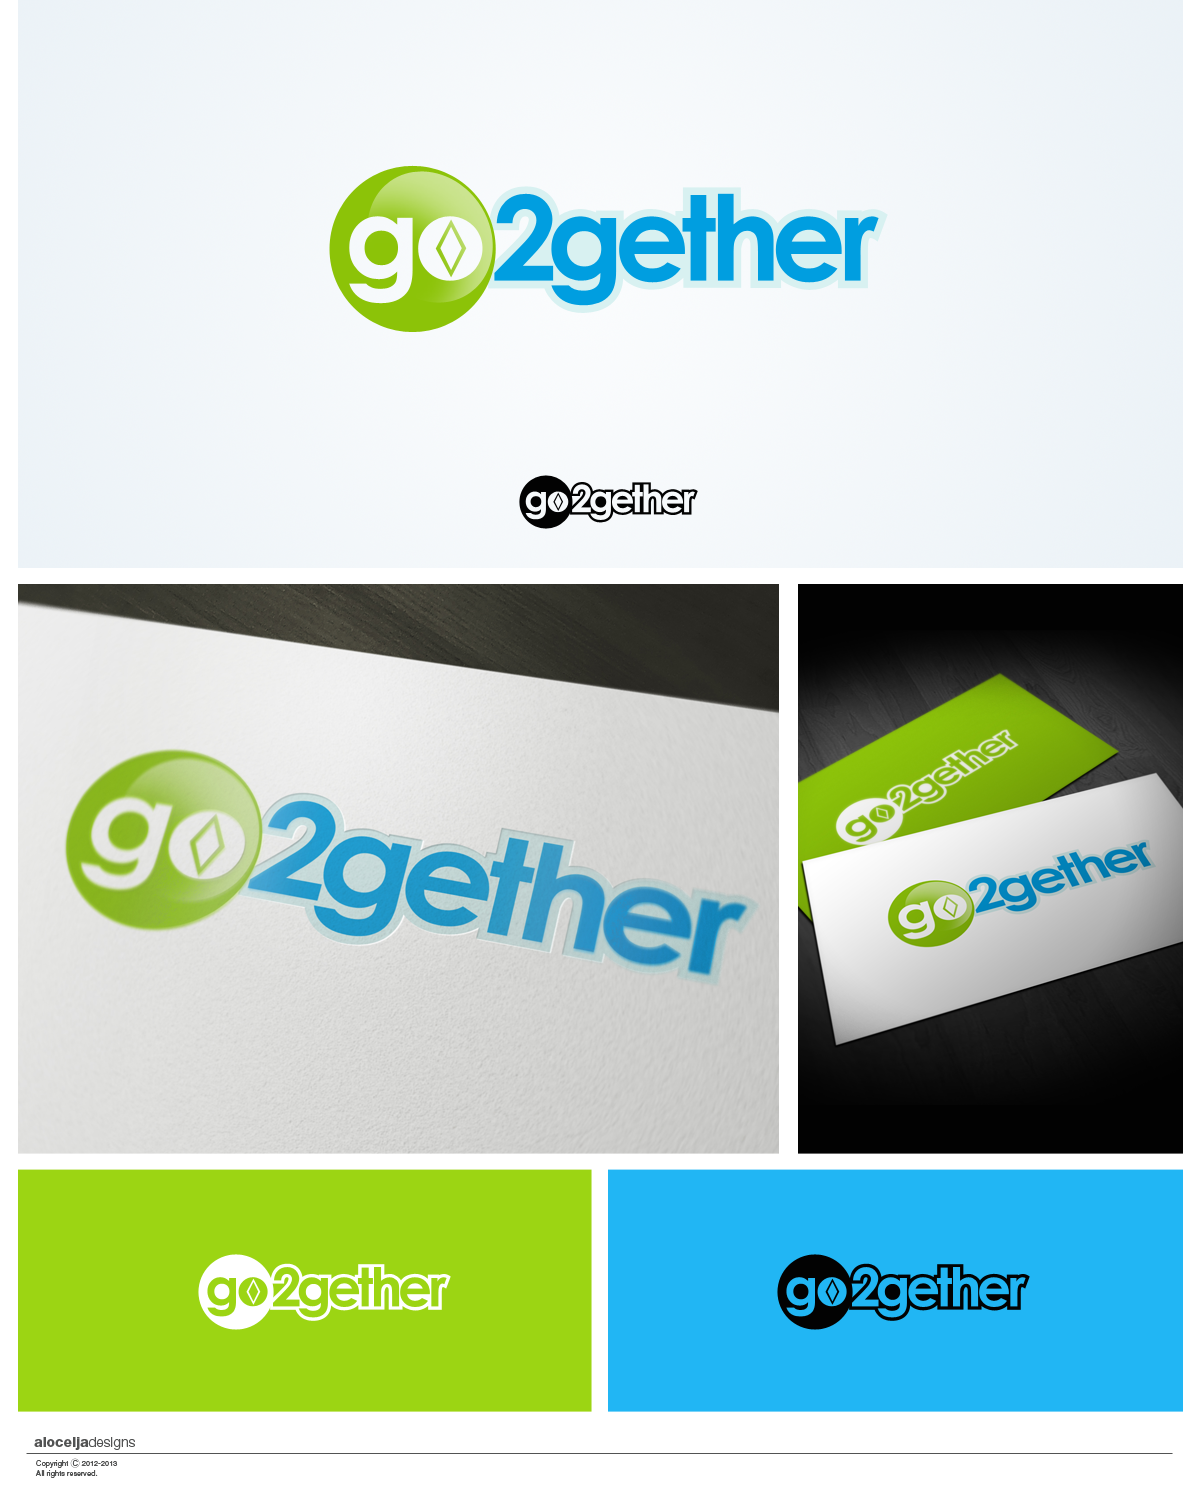 Logo Design by alocelja - Entry No. 14 in the Logo Design Contest Captivating Logo Design for GO2GETHER.